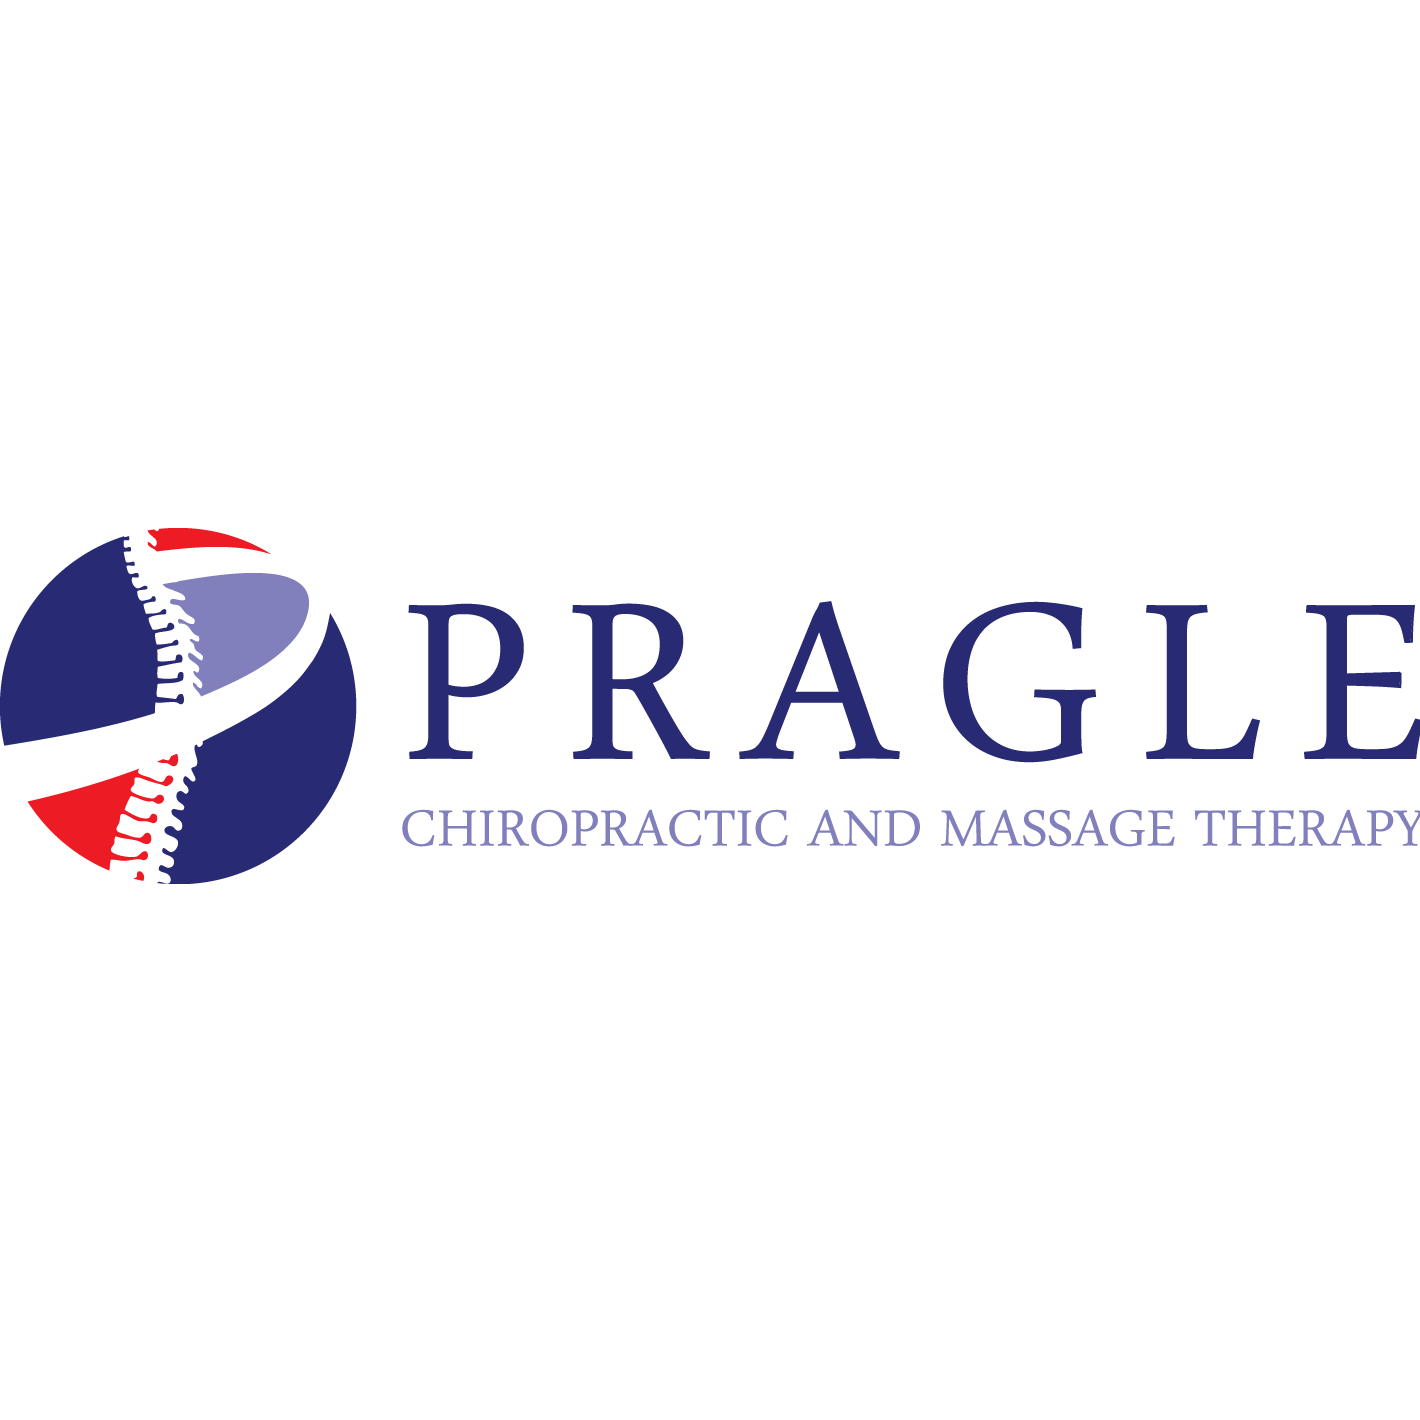 Pragle Chiropractic And Massage Therapy